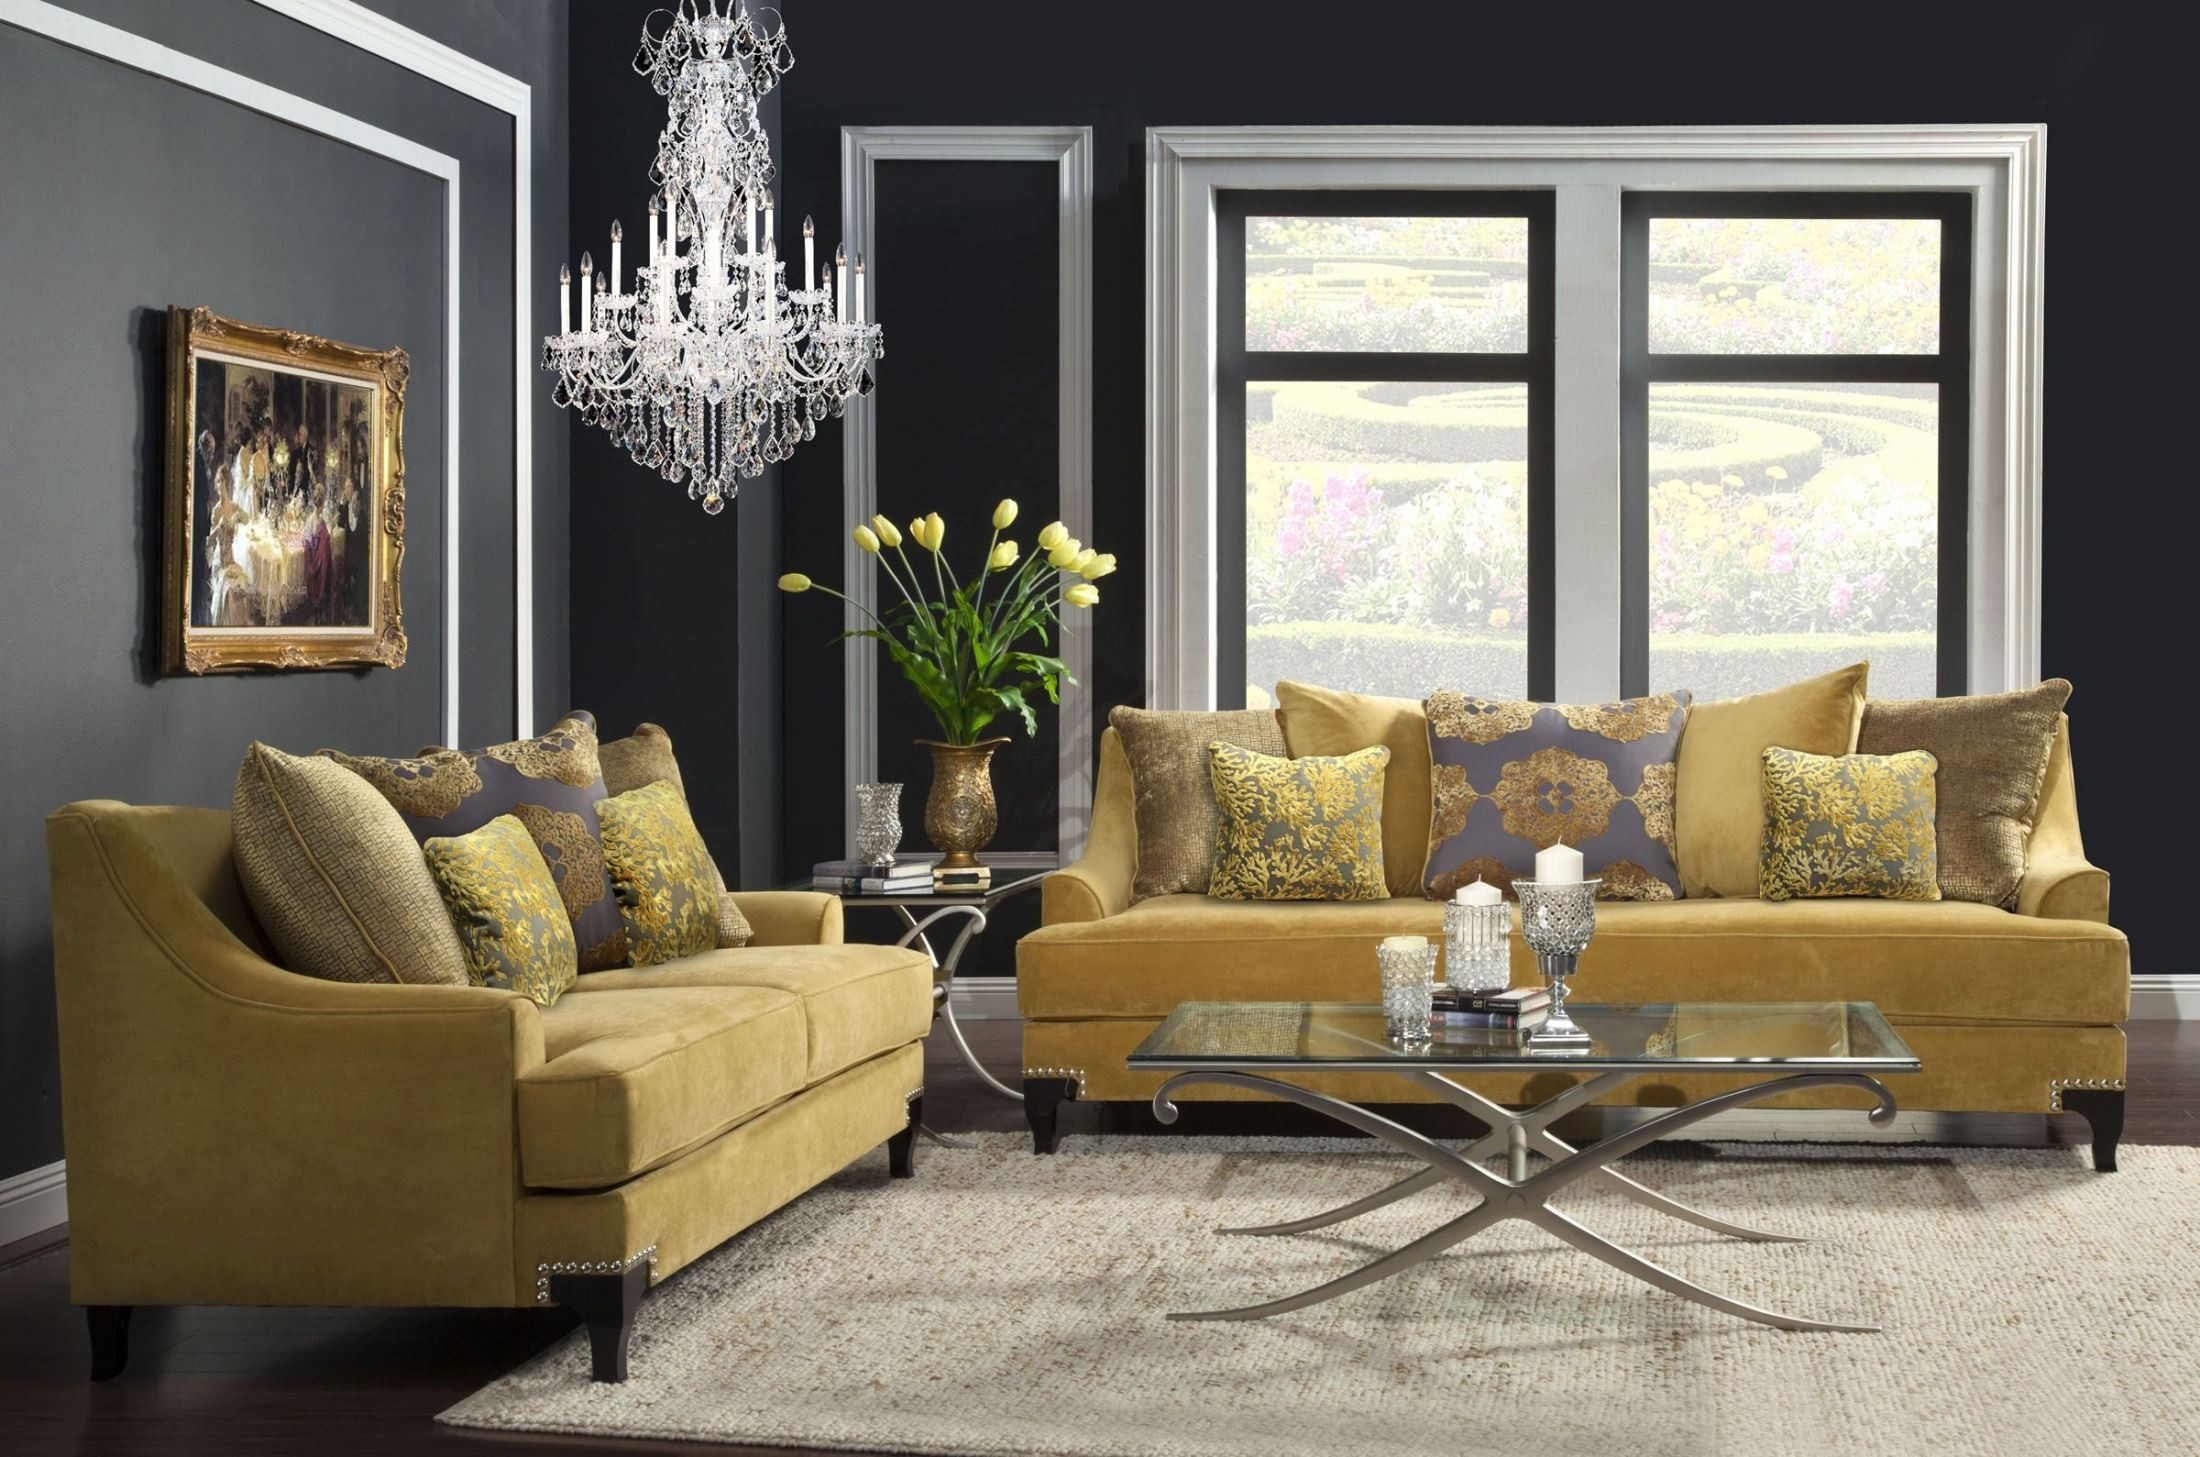 Surprising Viscontti Gold Living Room Set Interior Design Ideas Tzicisoteloinfo